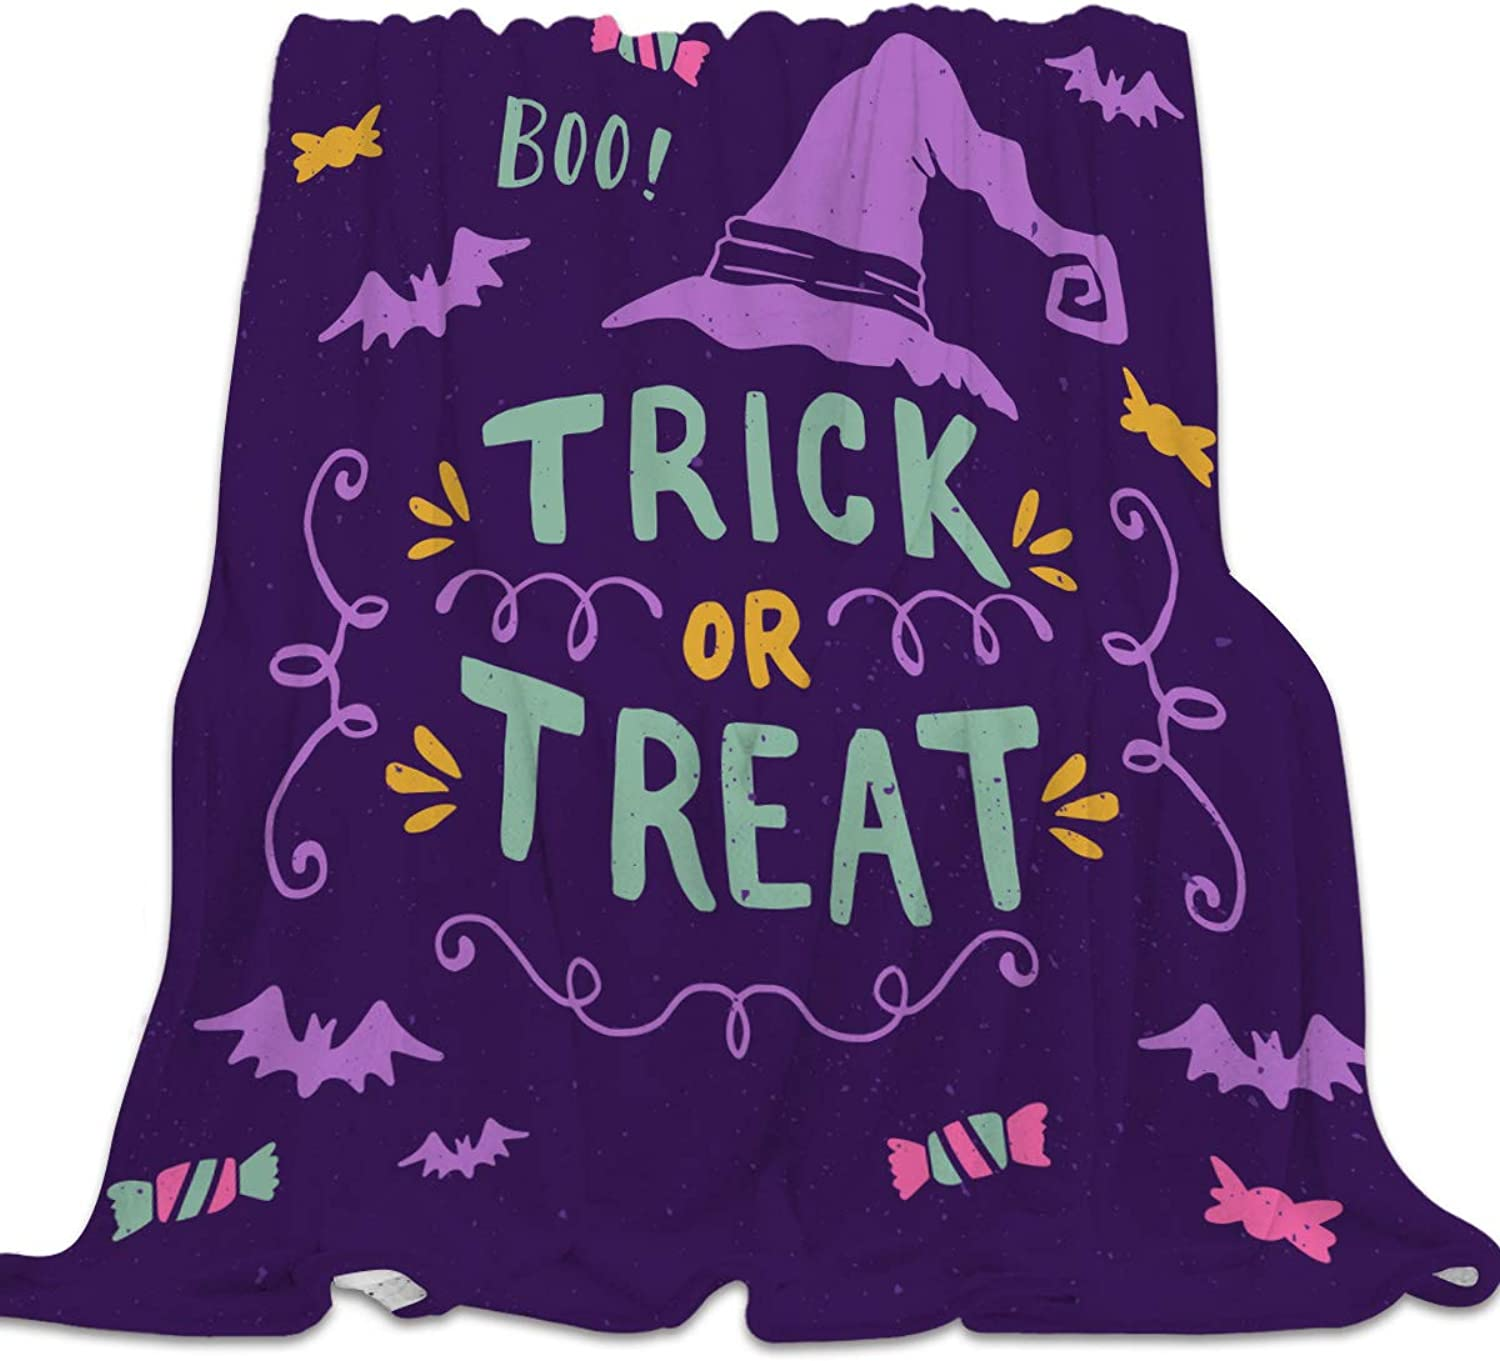 YEHO Art Gallery Flannel Fleece Bed Blanket Super Soft Cozy ThrowBlankets for Kids Girls Boys,Lightweight Blankets for Bed Sofa Couch Chair Day Nap,Trick or Threat Purple Halloween Design,49x59inch